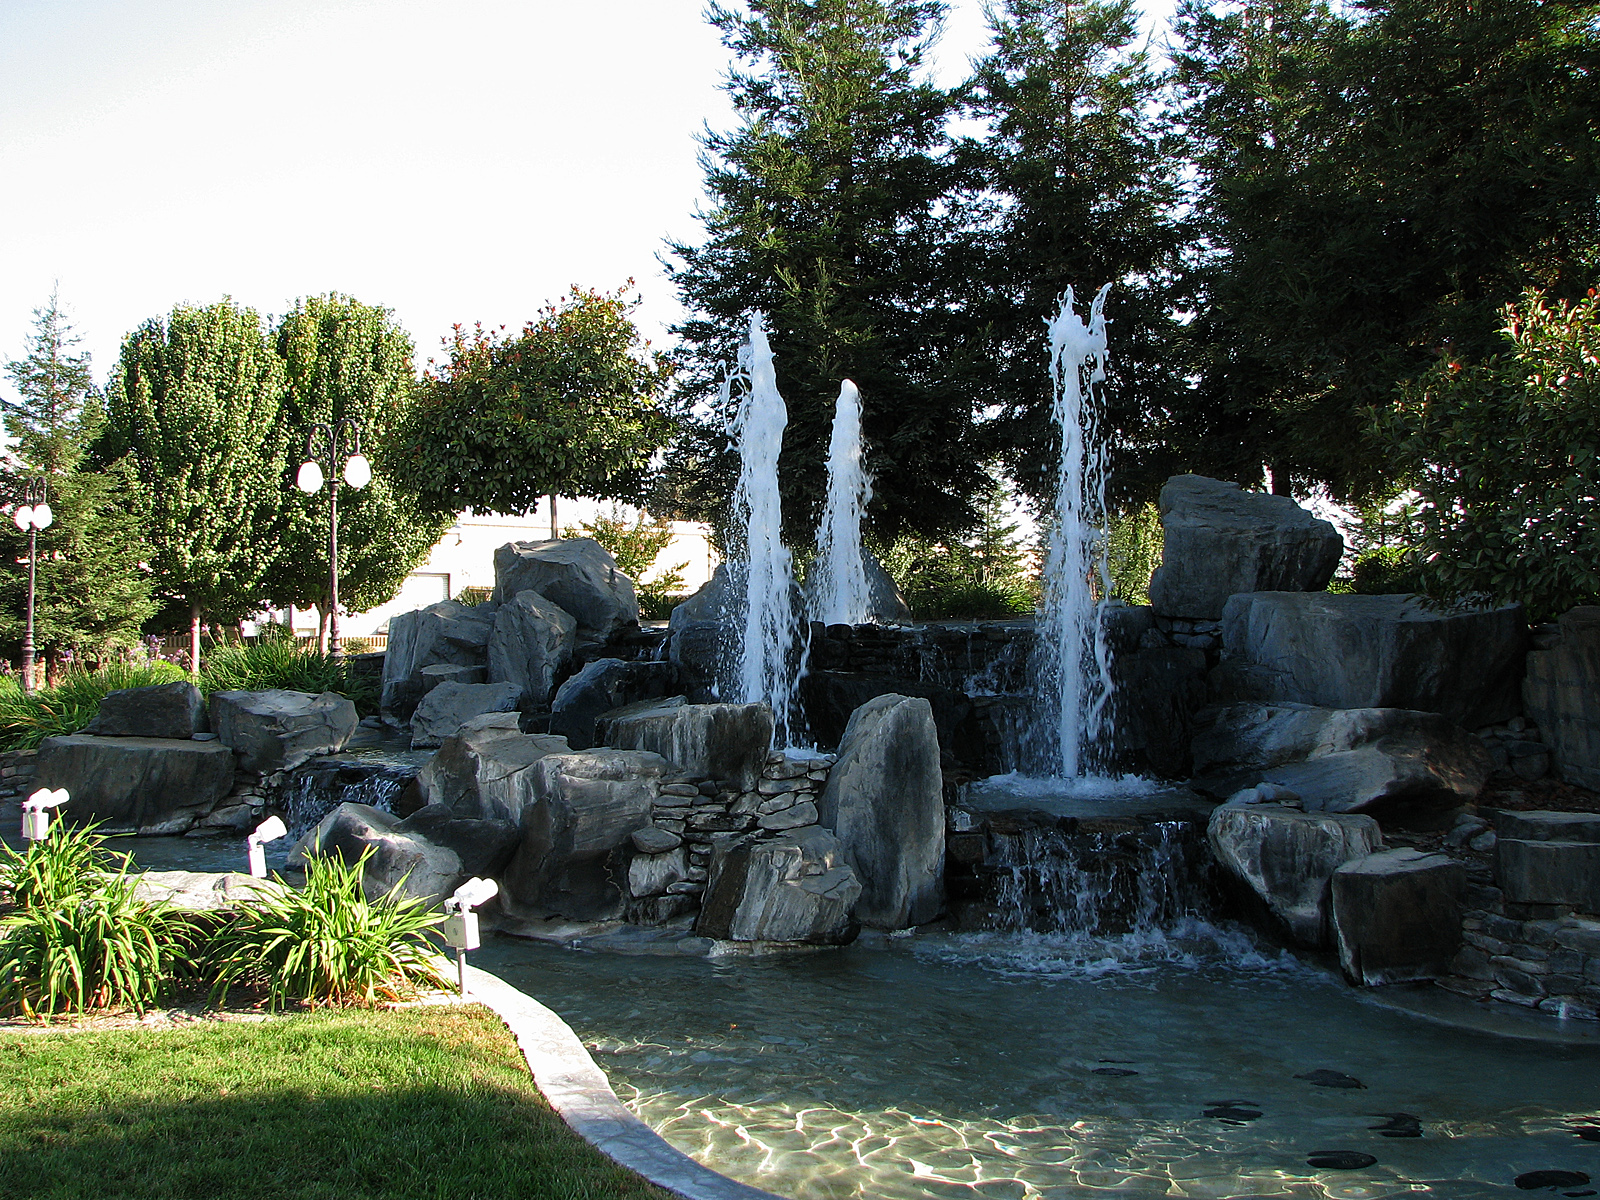 Waterfall & Fountain, Bspo06, Flowing, Fountain, Park, HQ Photo